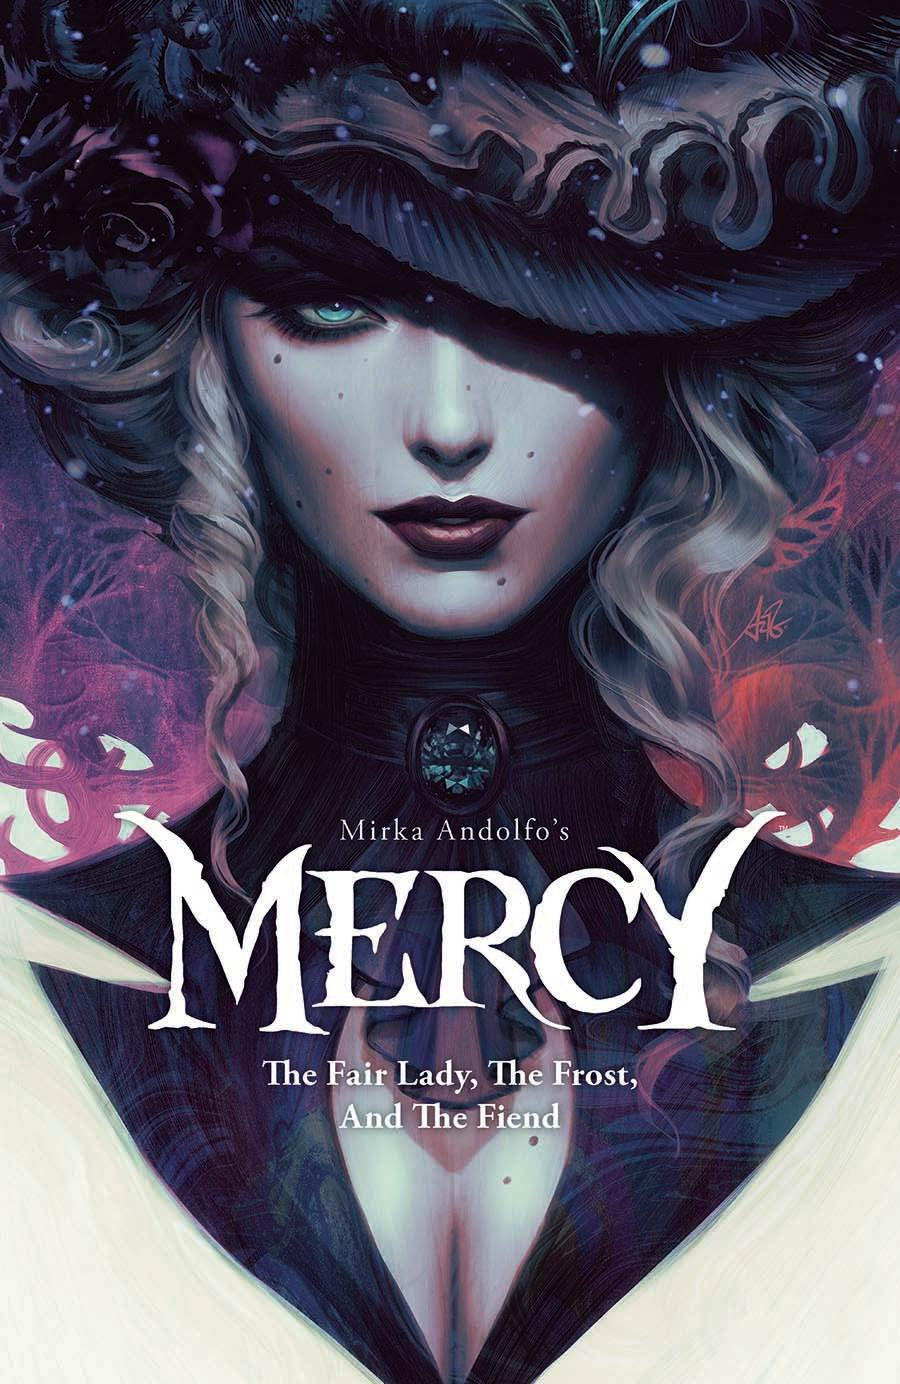 Mirka Andolfos Mercy The Fair Lady The Frost And The Fiend TP